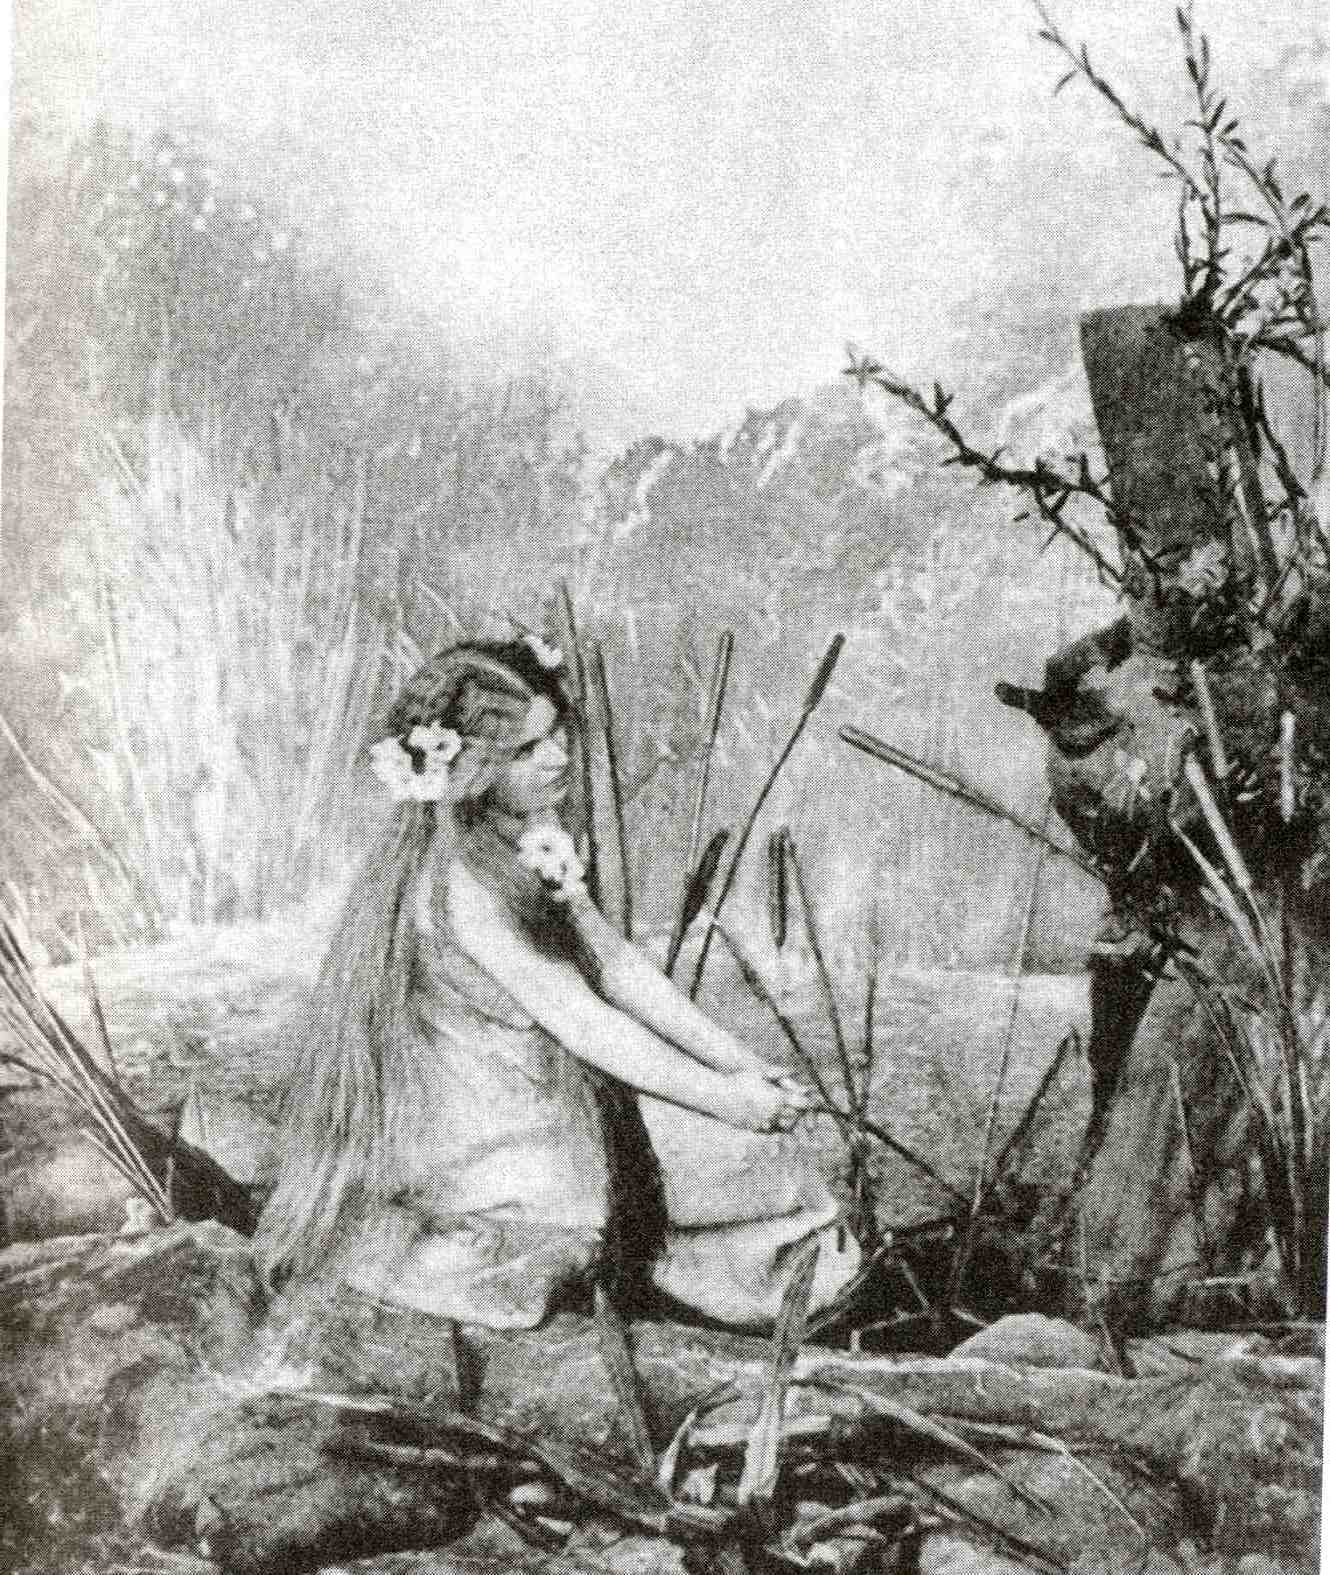 Jarmil Burghauser, Růžena Maturová as the first Rusalka, 1901